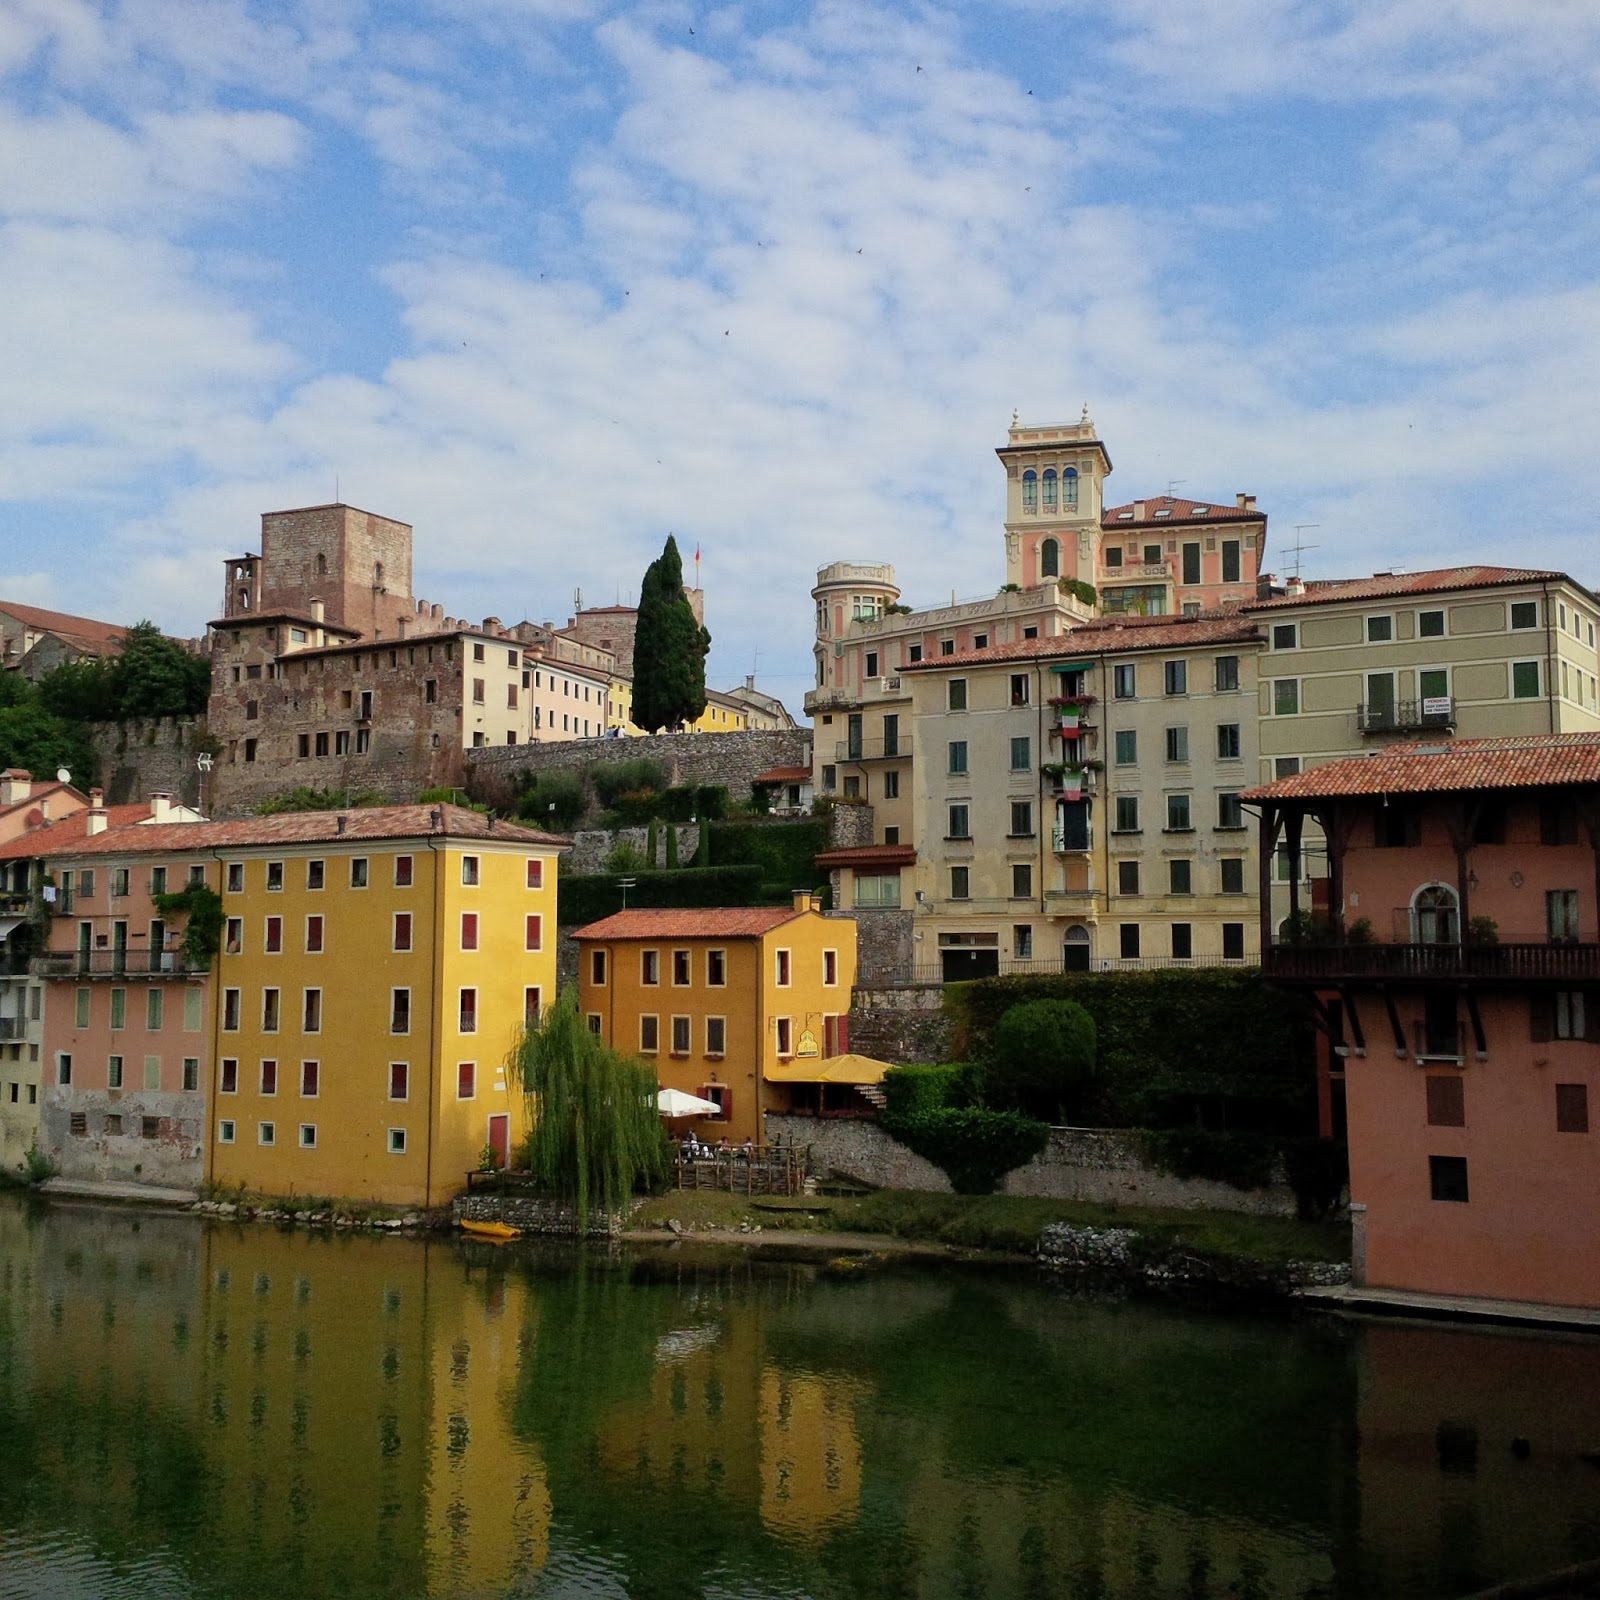 The river Brenta and Bassano del Grapa, Veneto, Italy - www.rossiwrites.com